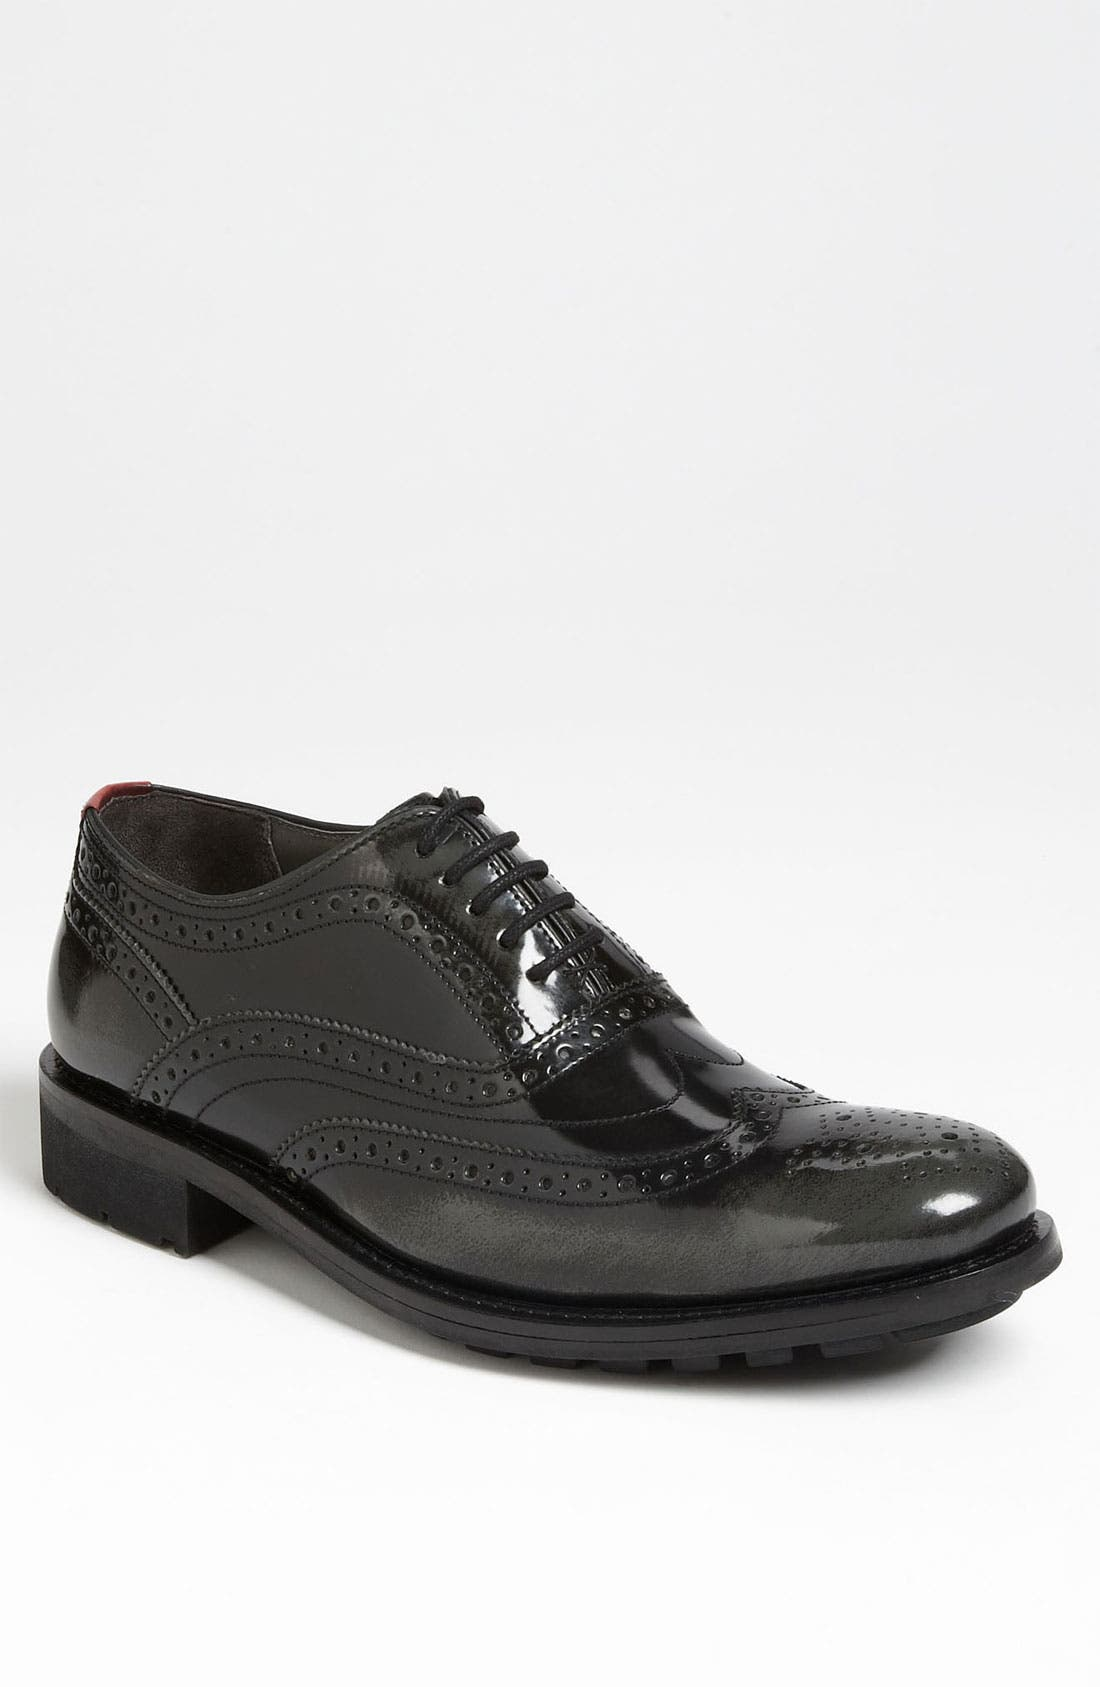 Alternate Image 1 Selected - Ted Baker London 'Guri-Rub' Wingtip Oxford